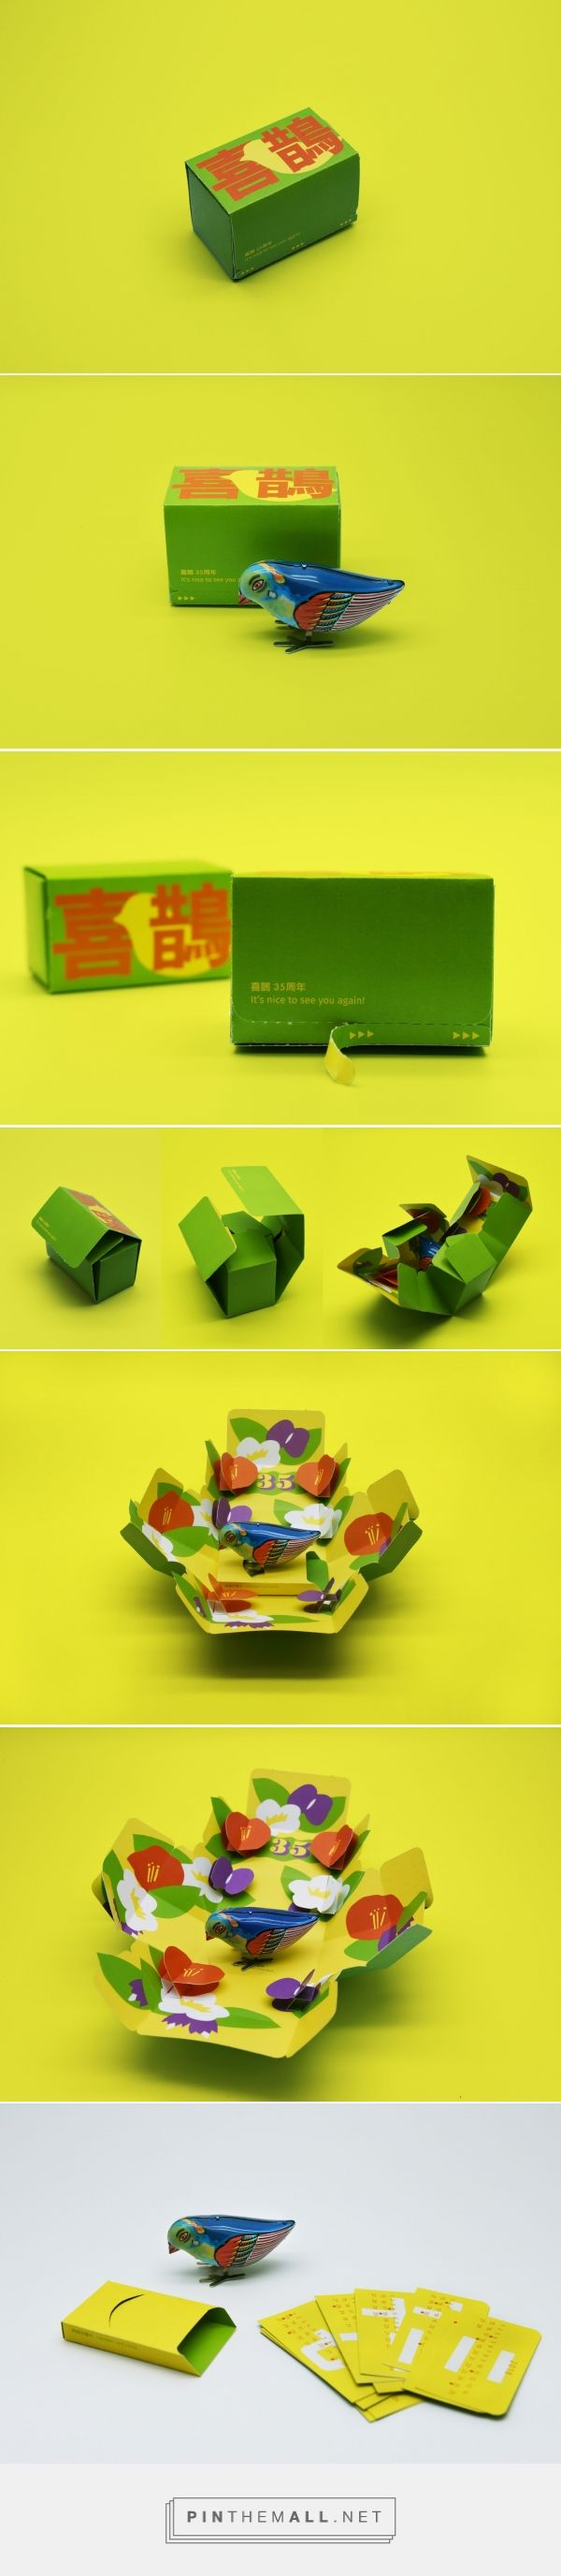 Xique - 35 Anniversary Toy Package student design concept by Shuang Wu - http://www.packagingoftheworld.com/2017/12/xique-35-anniversary-toy-package.html